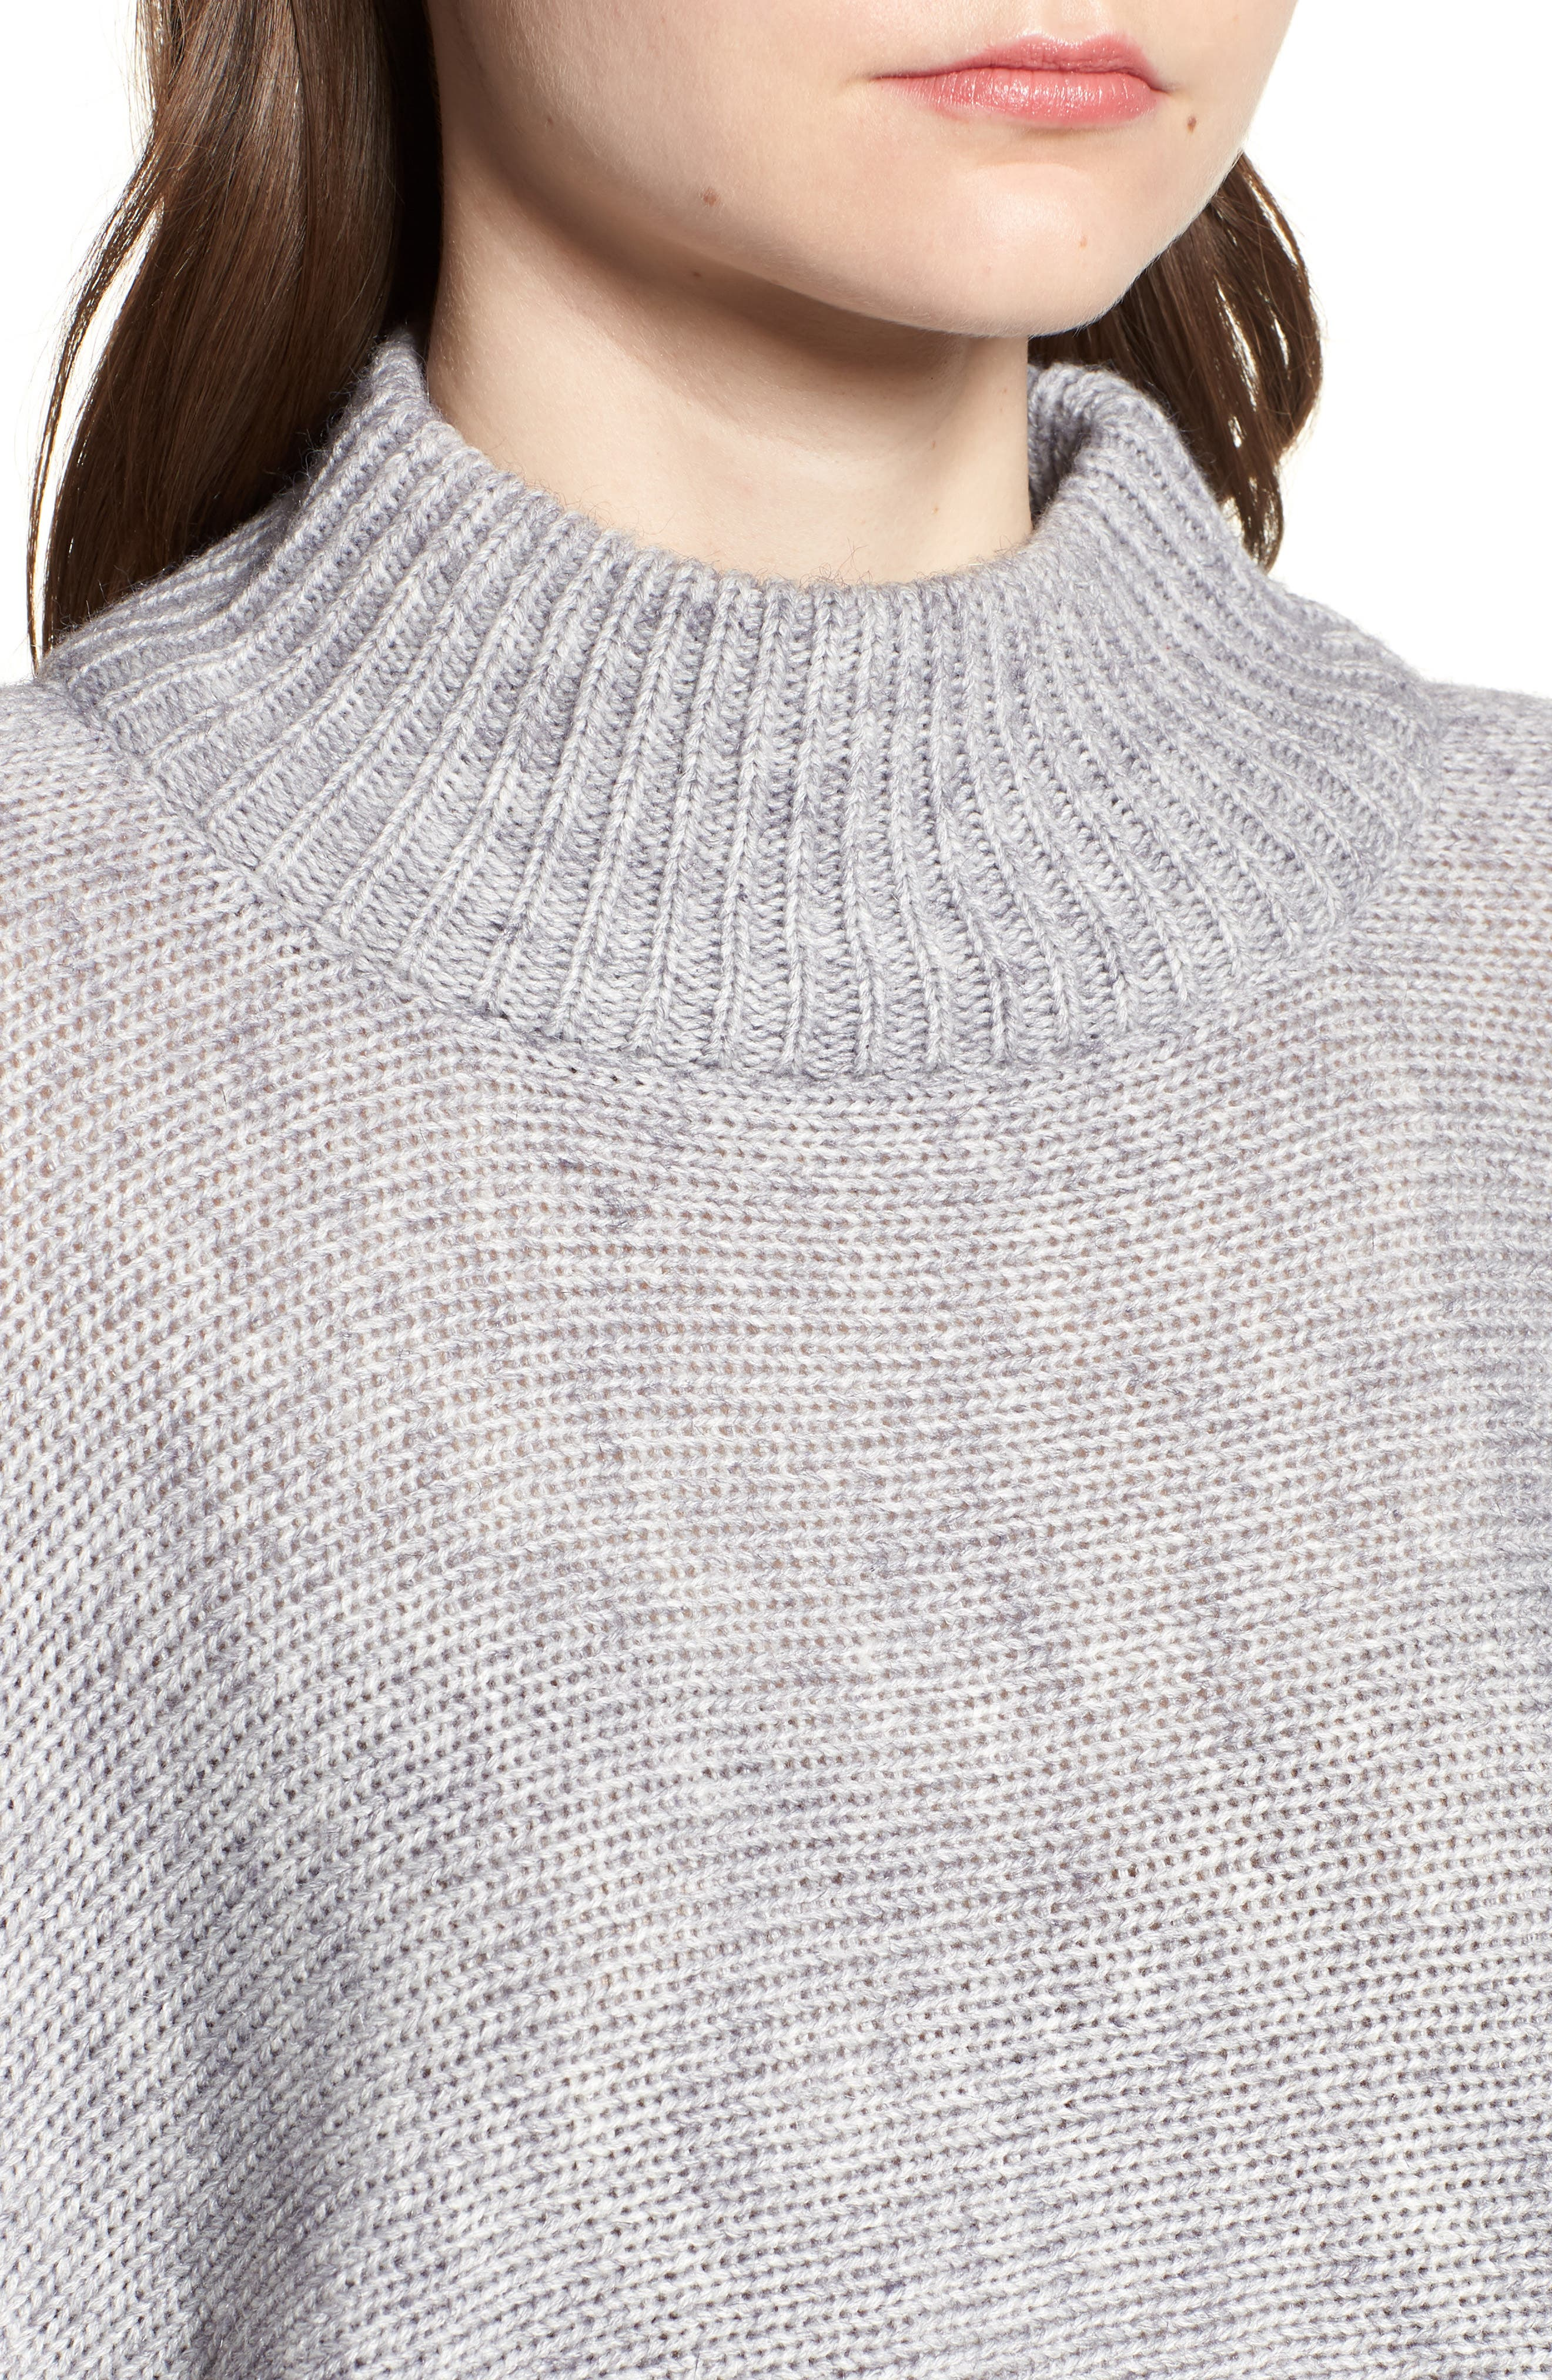 Bishop + Young Olivia Crop Sweater,                             Alternate thumbnail 4, color,                             Grey